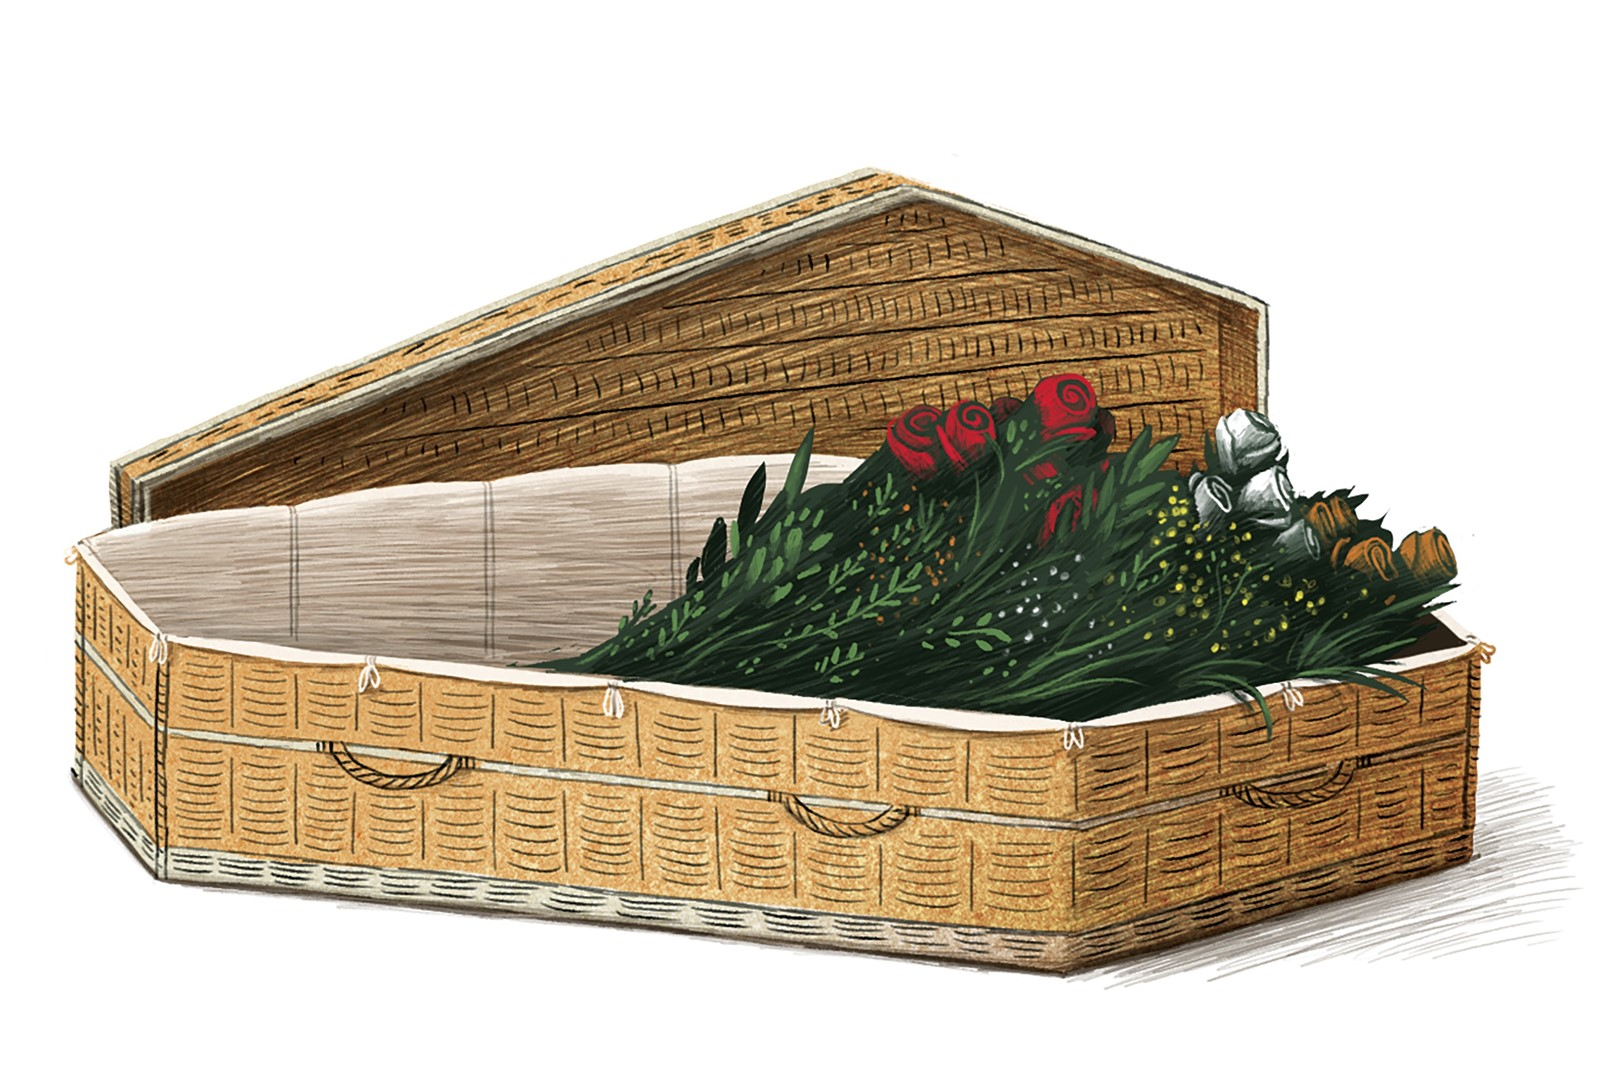 eco-friendly burial